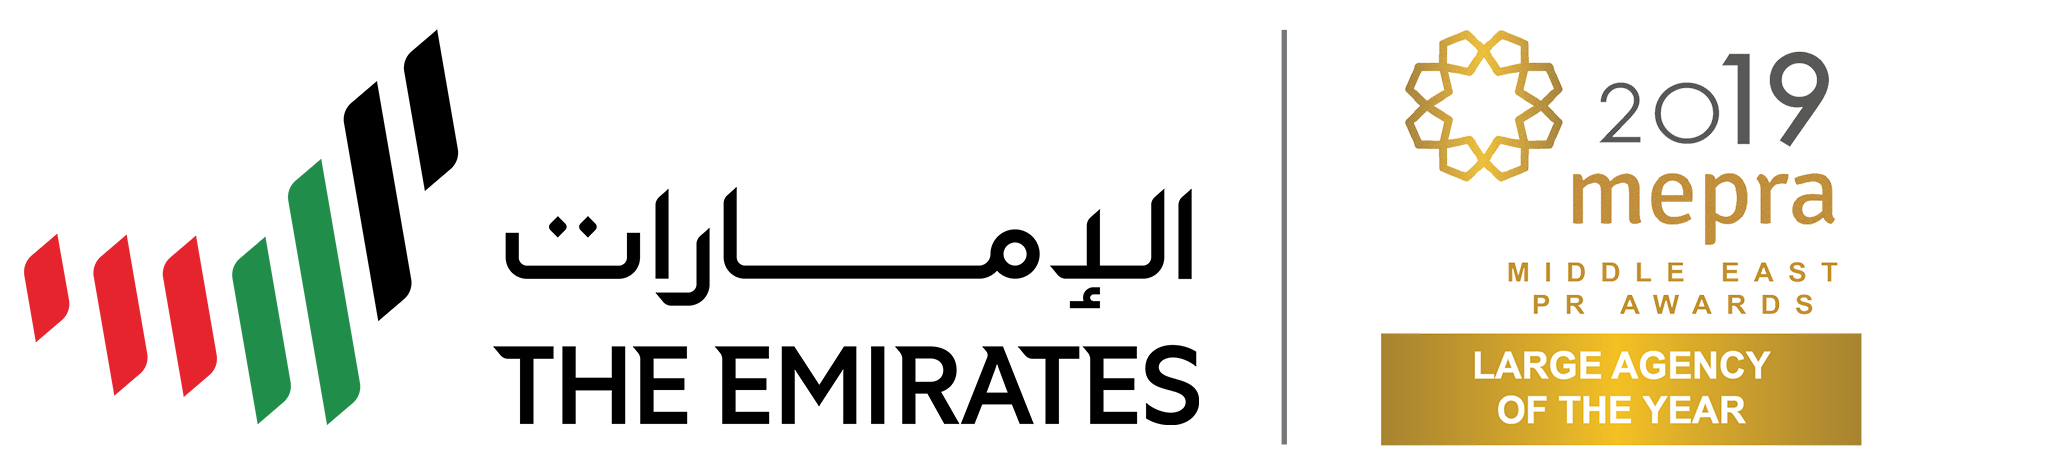 The Emirates | MEPRA 2019 - Large Agency of the Year